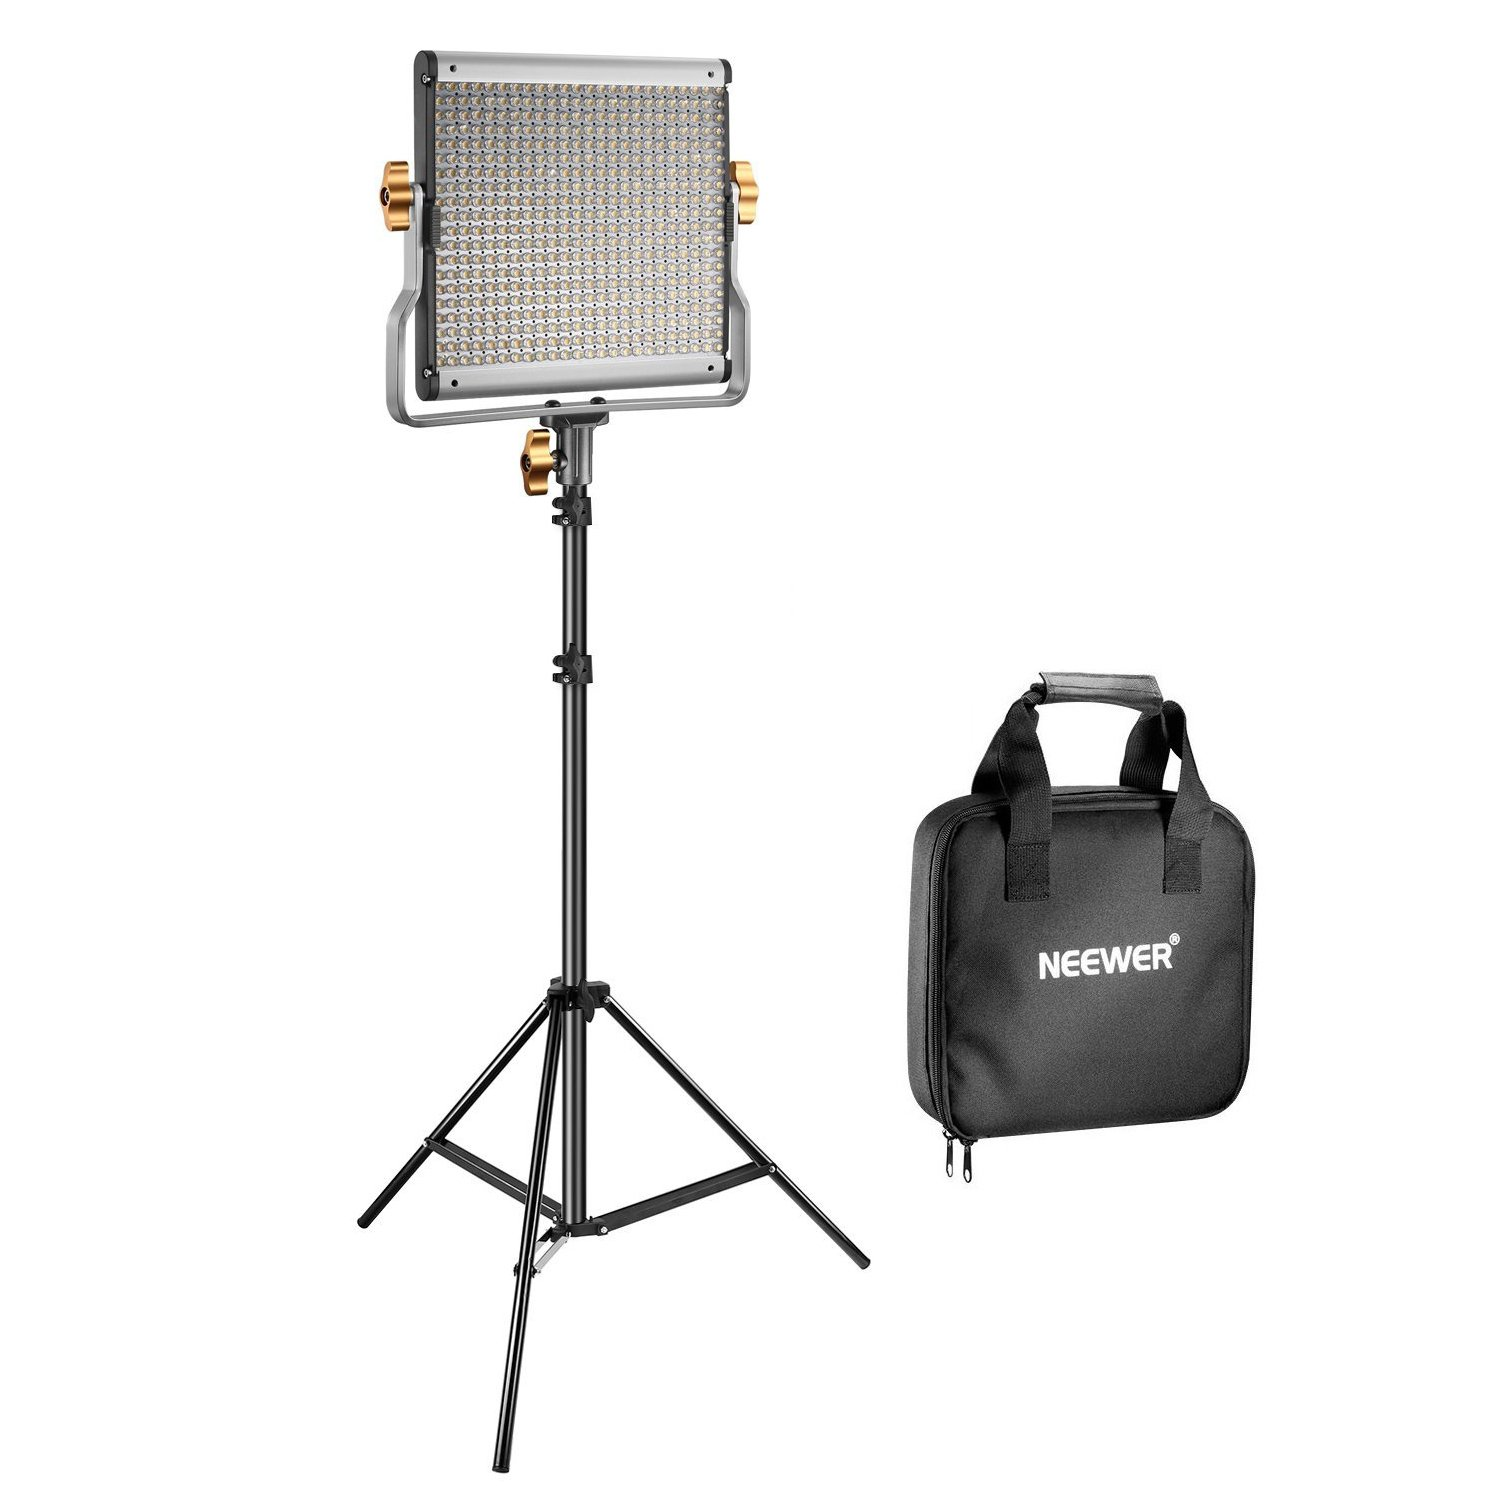 Neewer 480 LED Video Light and Stand Lighting Kit - Dimmable Bi-Color LED Panel with U Bracket (3200-5600K, CRI 96+) and 75-Inch Light Stand for Photo Studio Portrait, YouTube Video Photography by Neewer